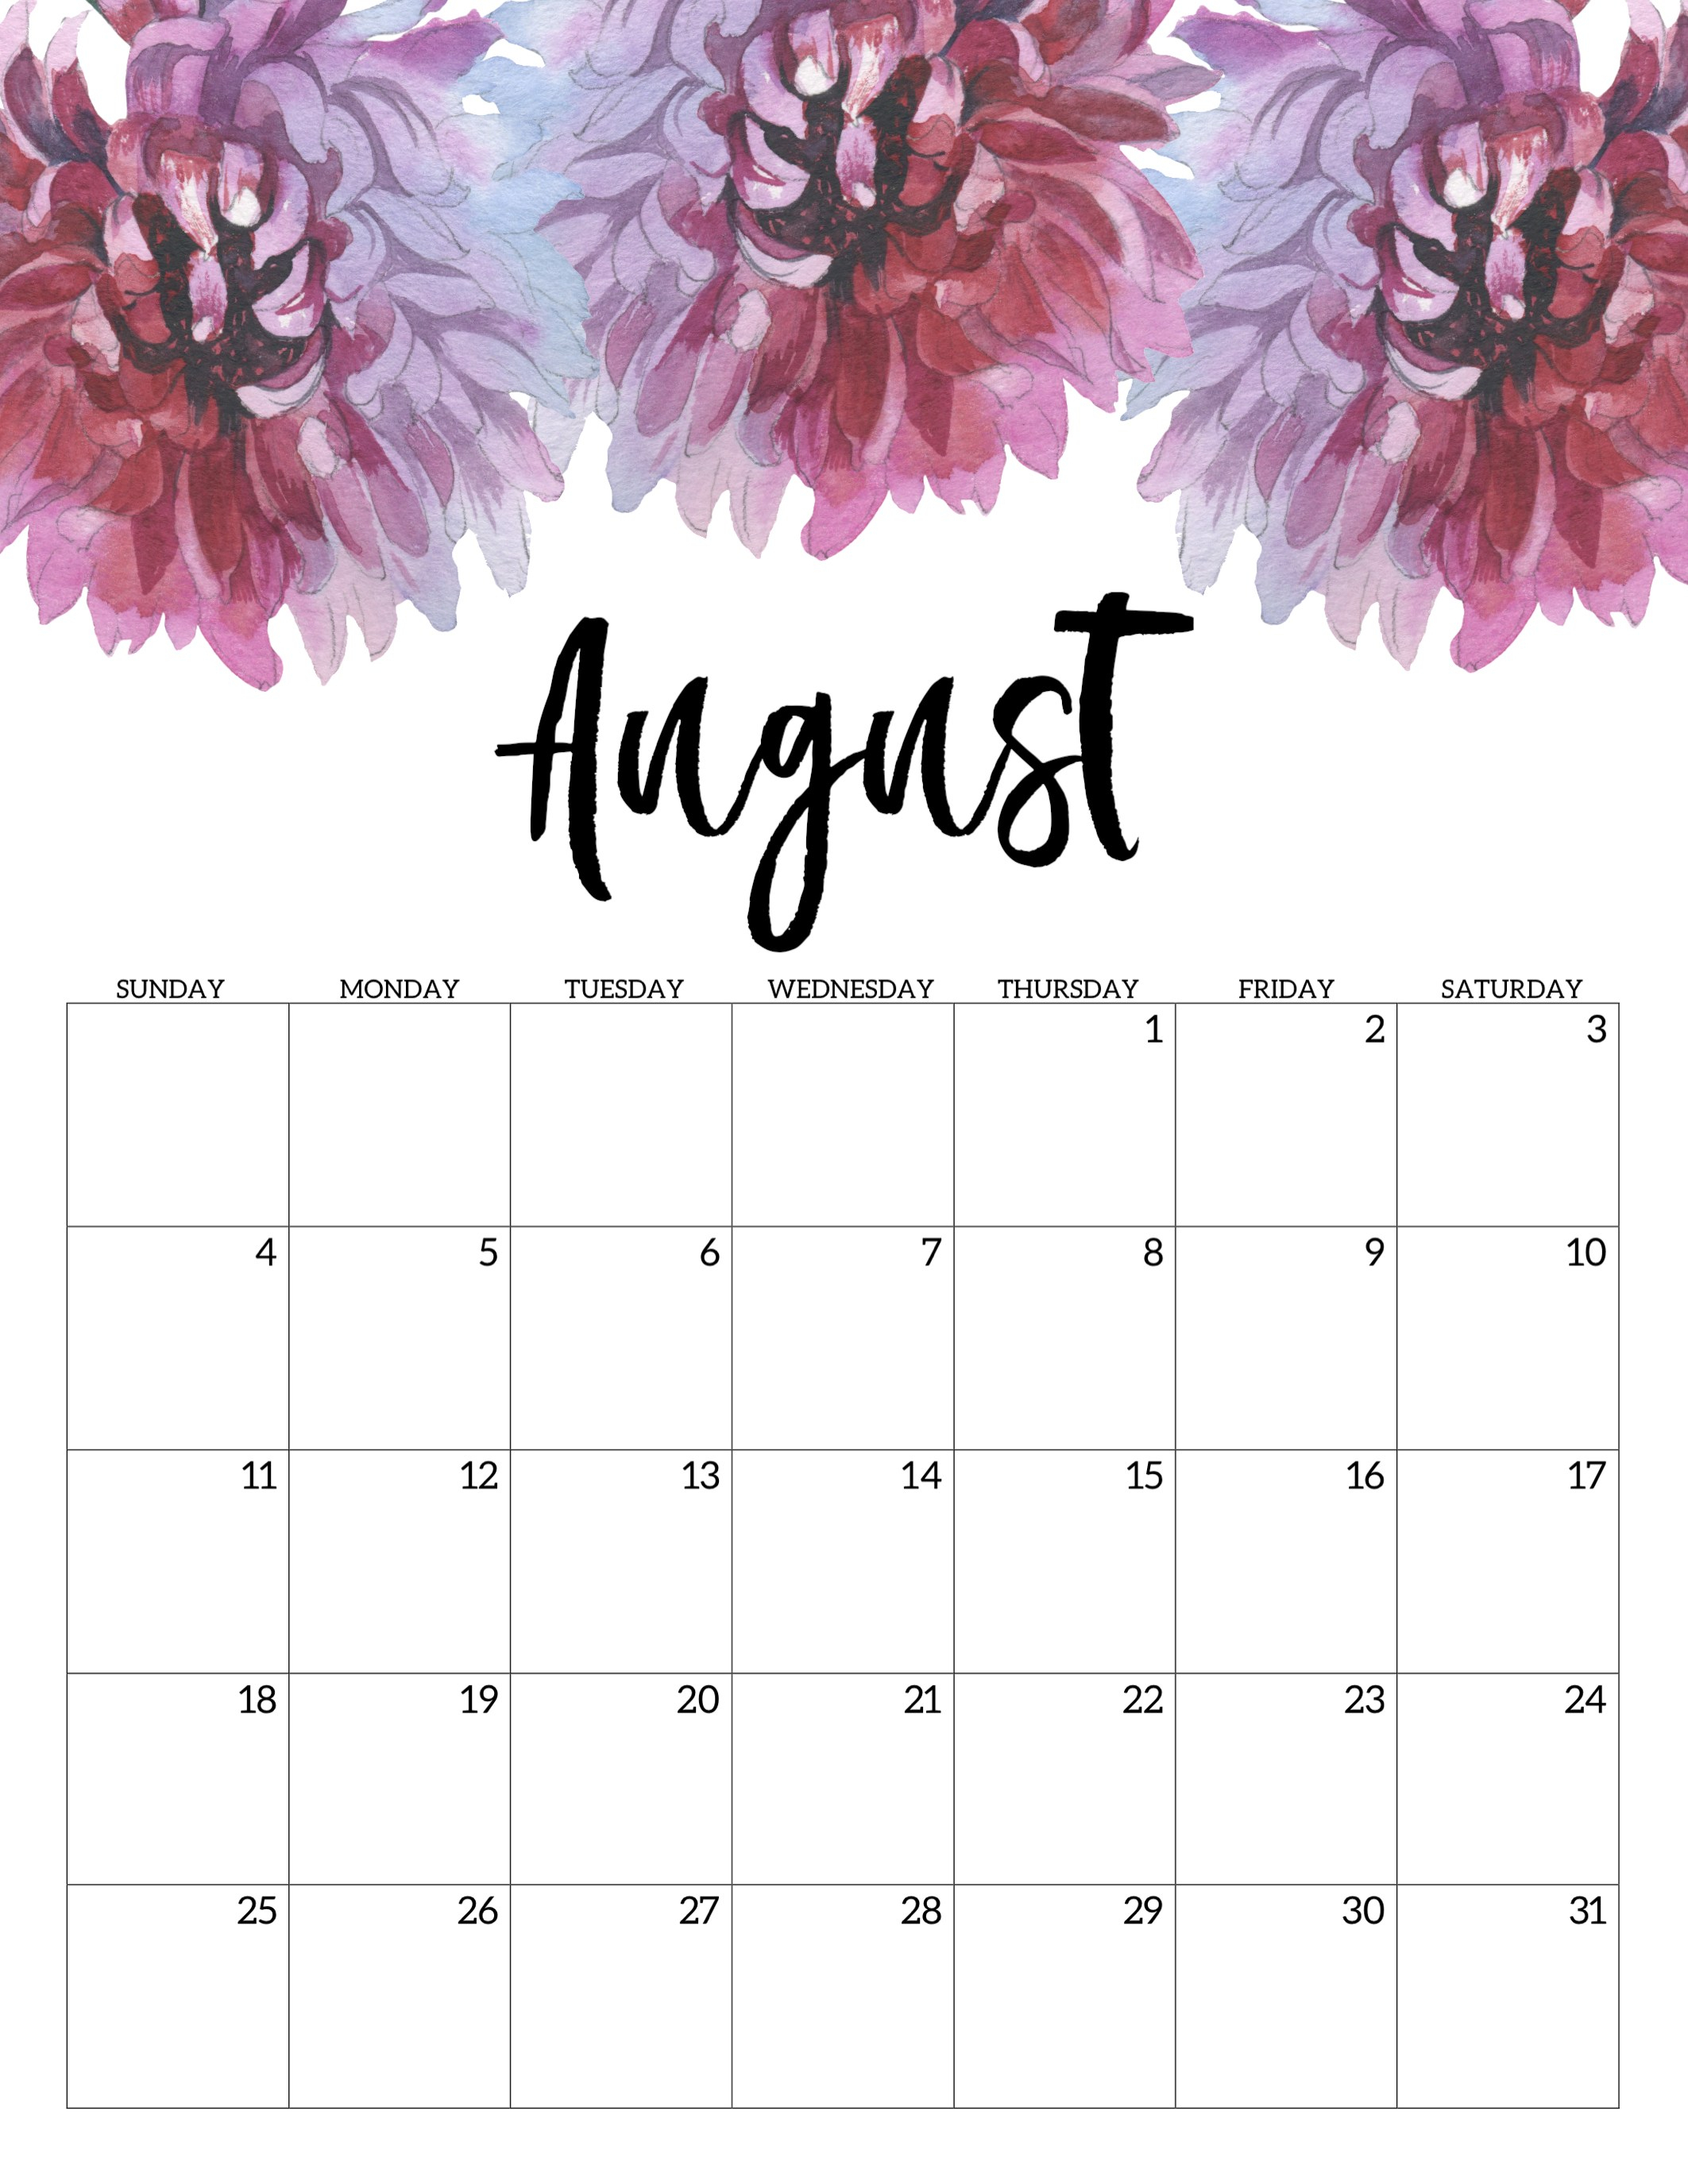 Free Printable Calendar 2019 - Floral - Paper Trail Design regarding 2019 2020 Girly Calendar Printable